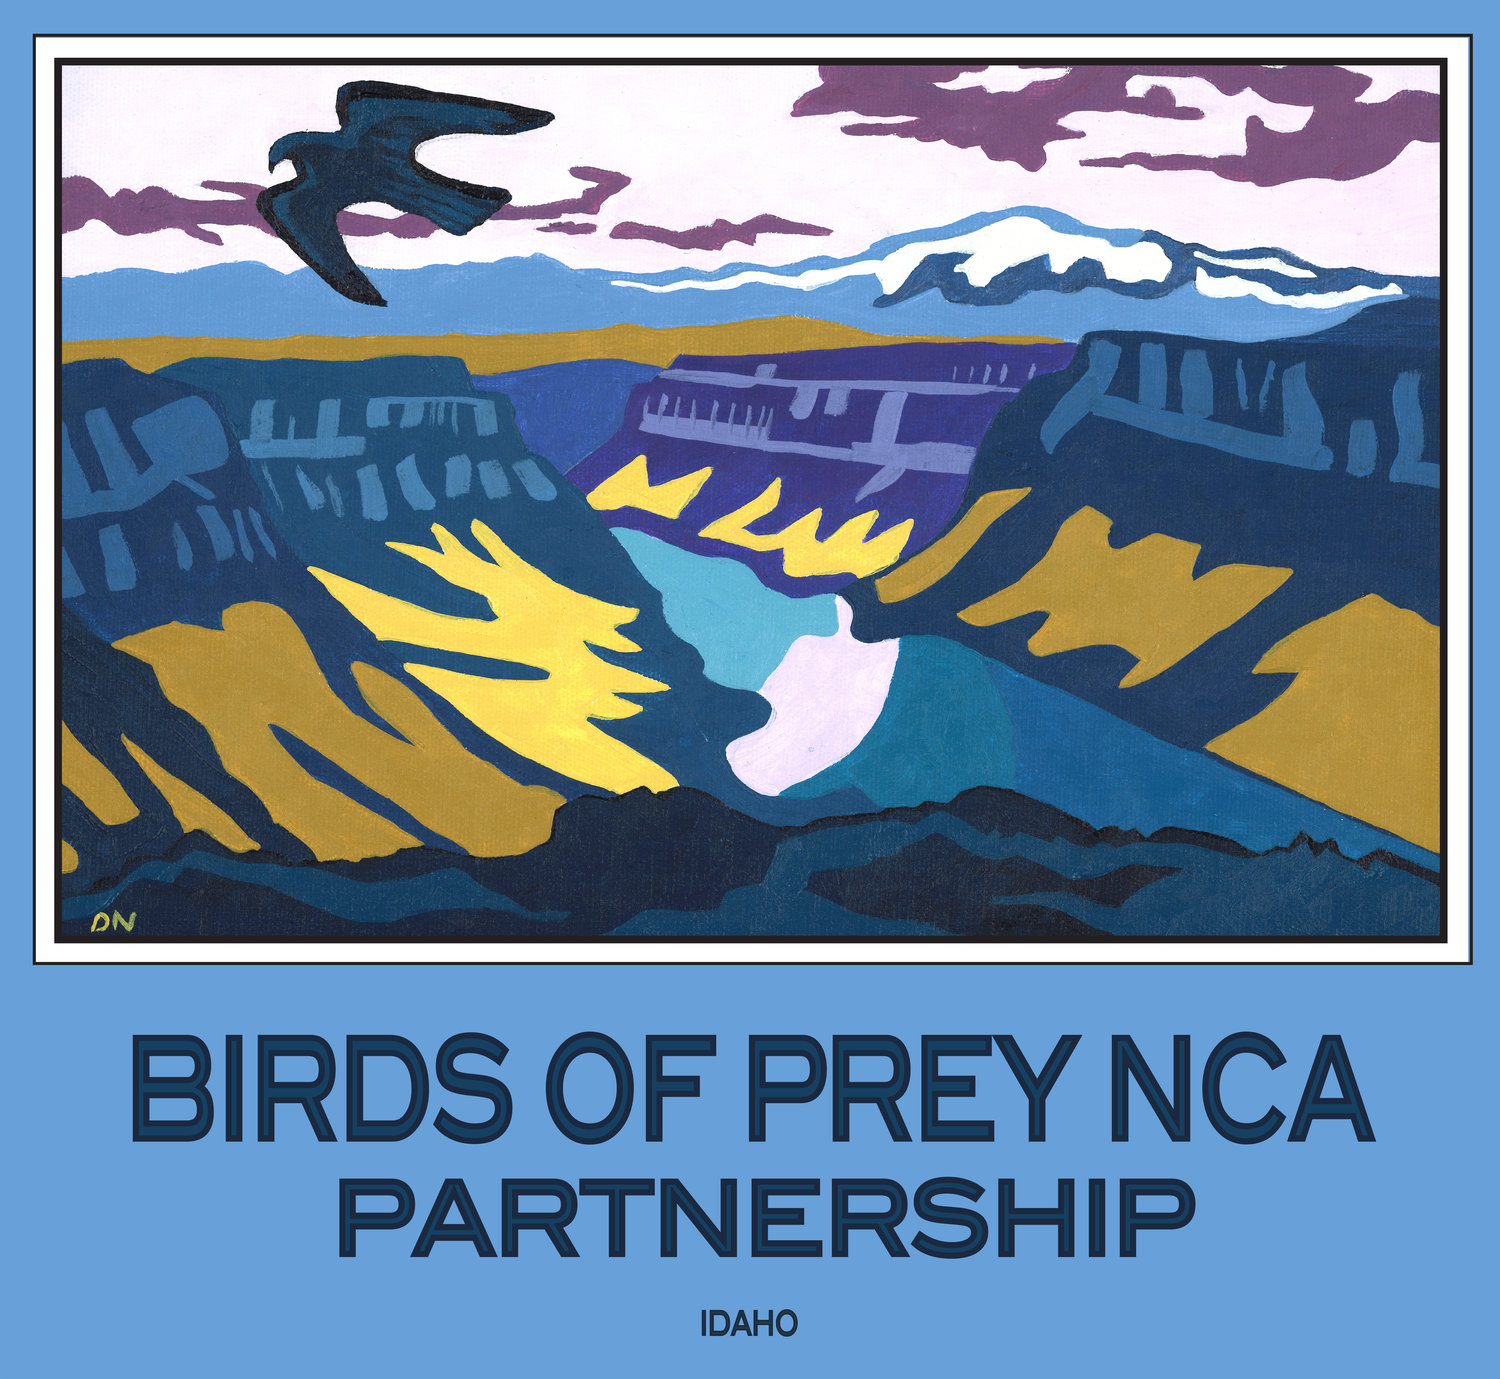 Birds of Prey NCA Partnership